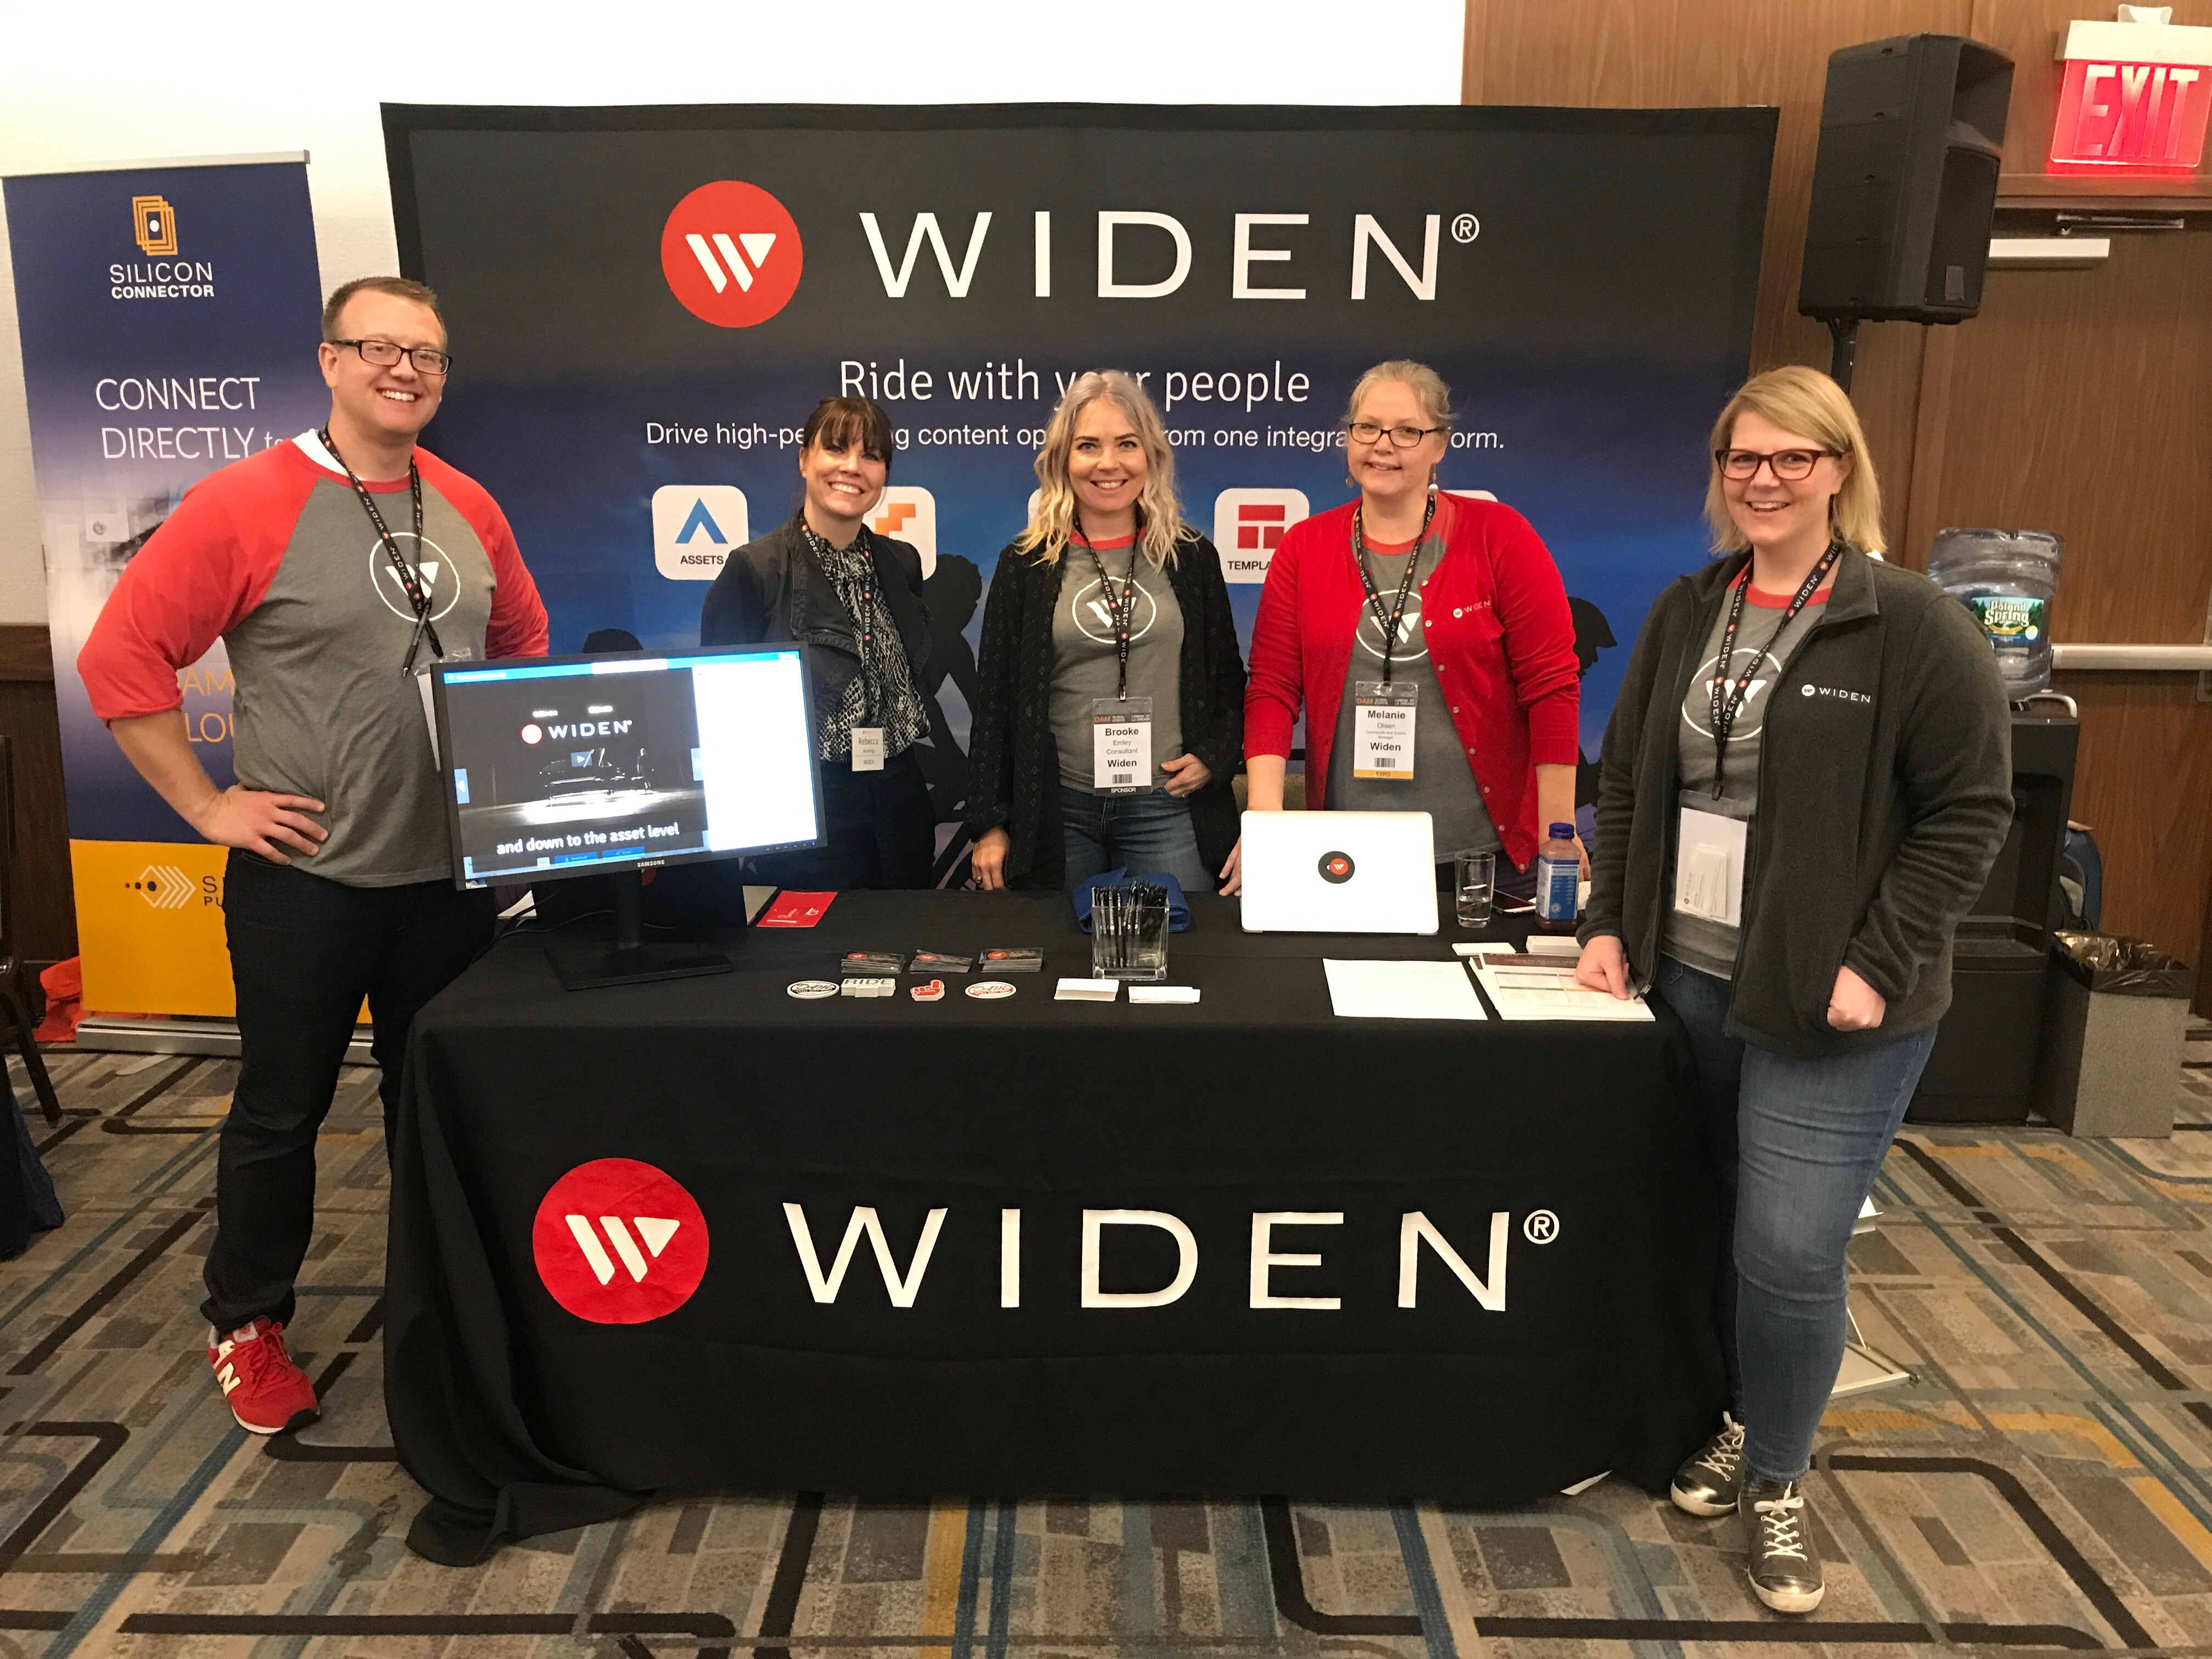 2018 Widen events